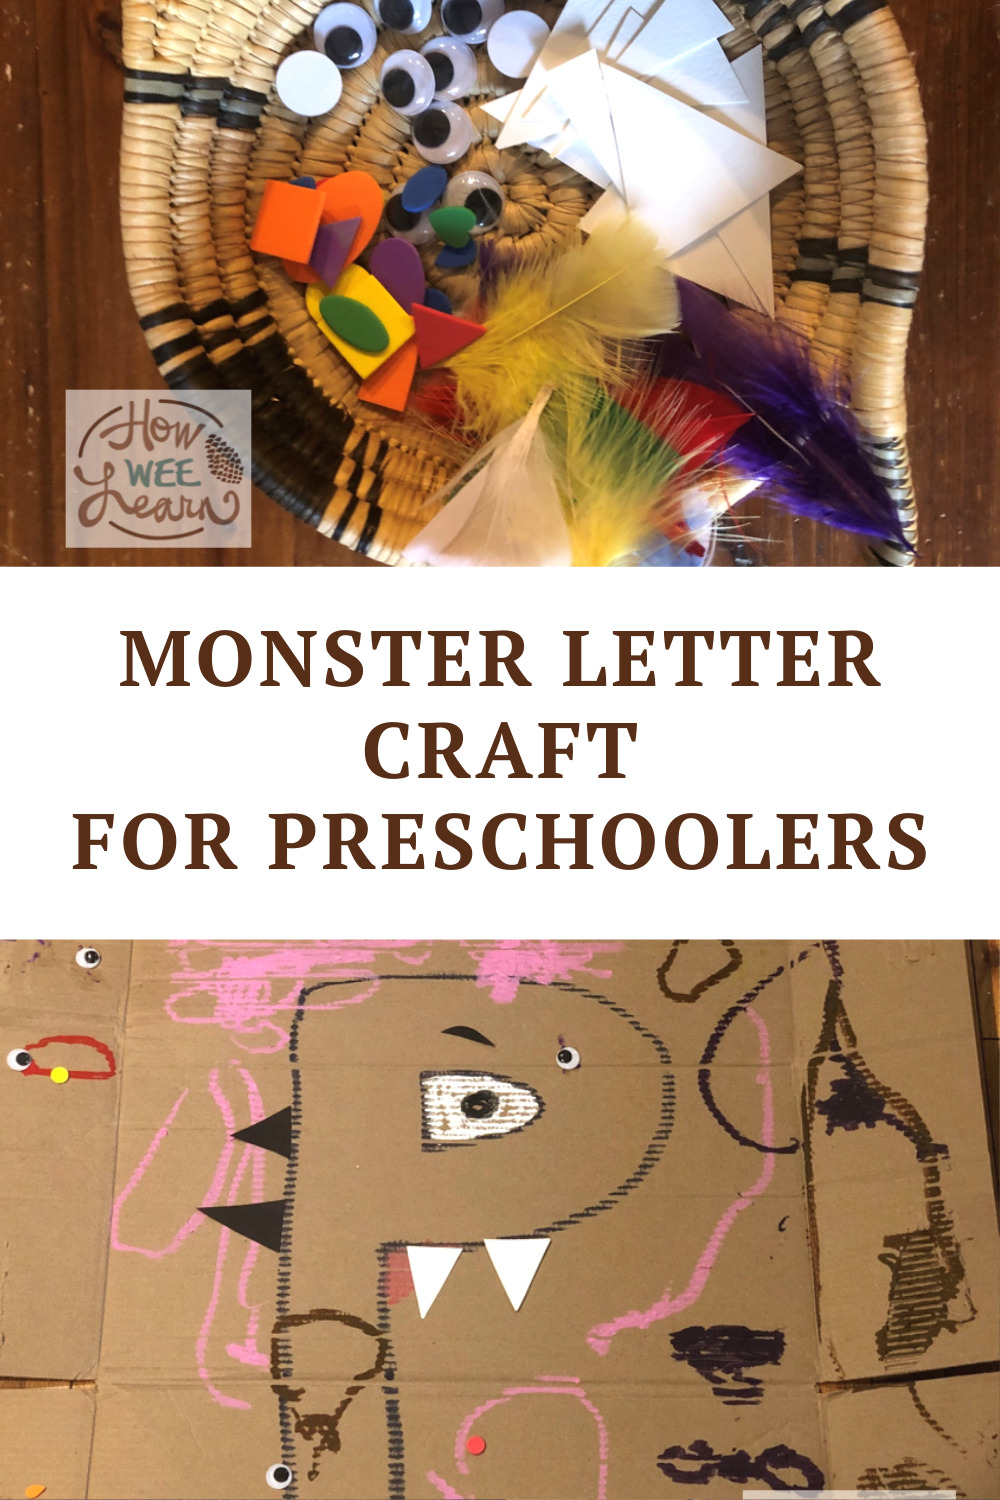 This monster craft for preschoolers is such a fun Halloween craft! Love that it combines learning letters with silly fun and art.